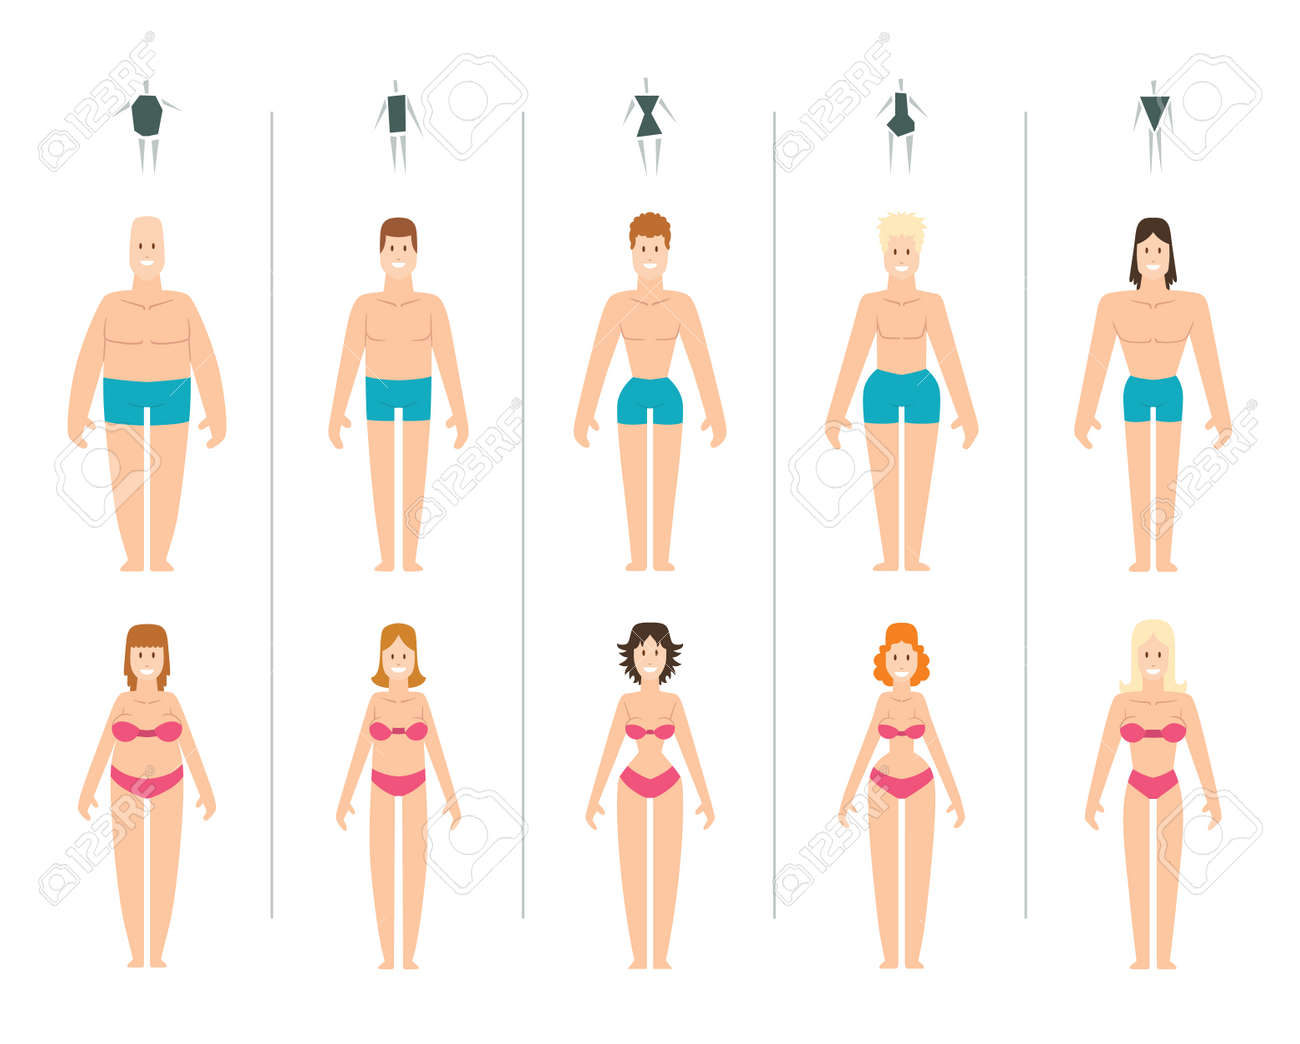 Female body types vector illustration. Body types slim anatomy constitution hourglass women proportions set. Style rectangle waist body types figure shape female silhouette. Fashion girl beauty body. - 59341843